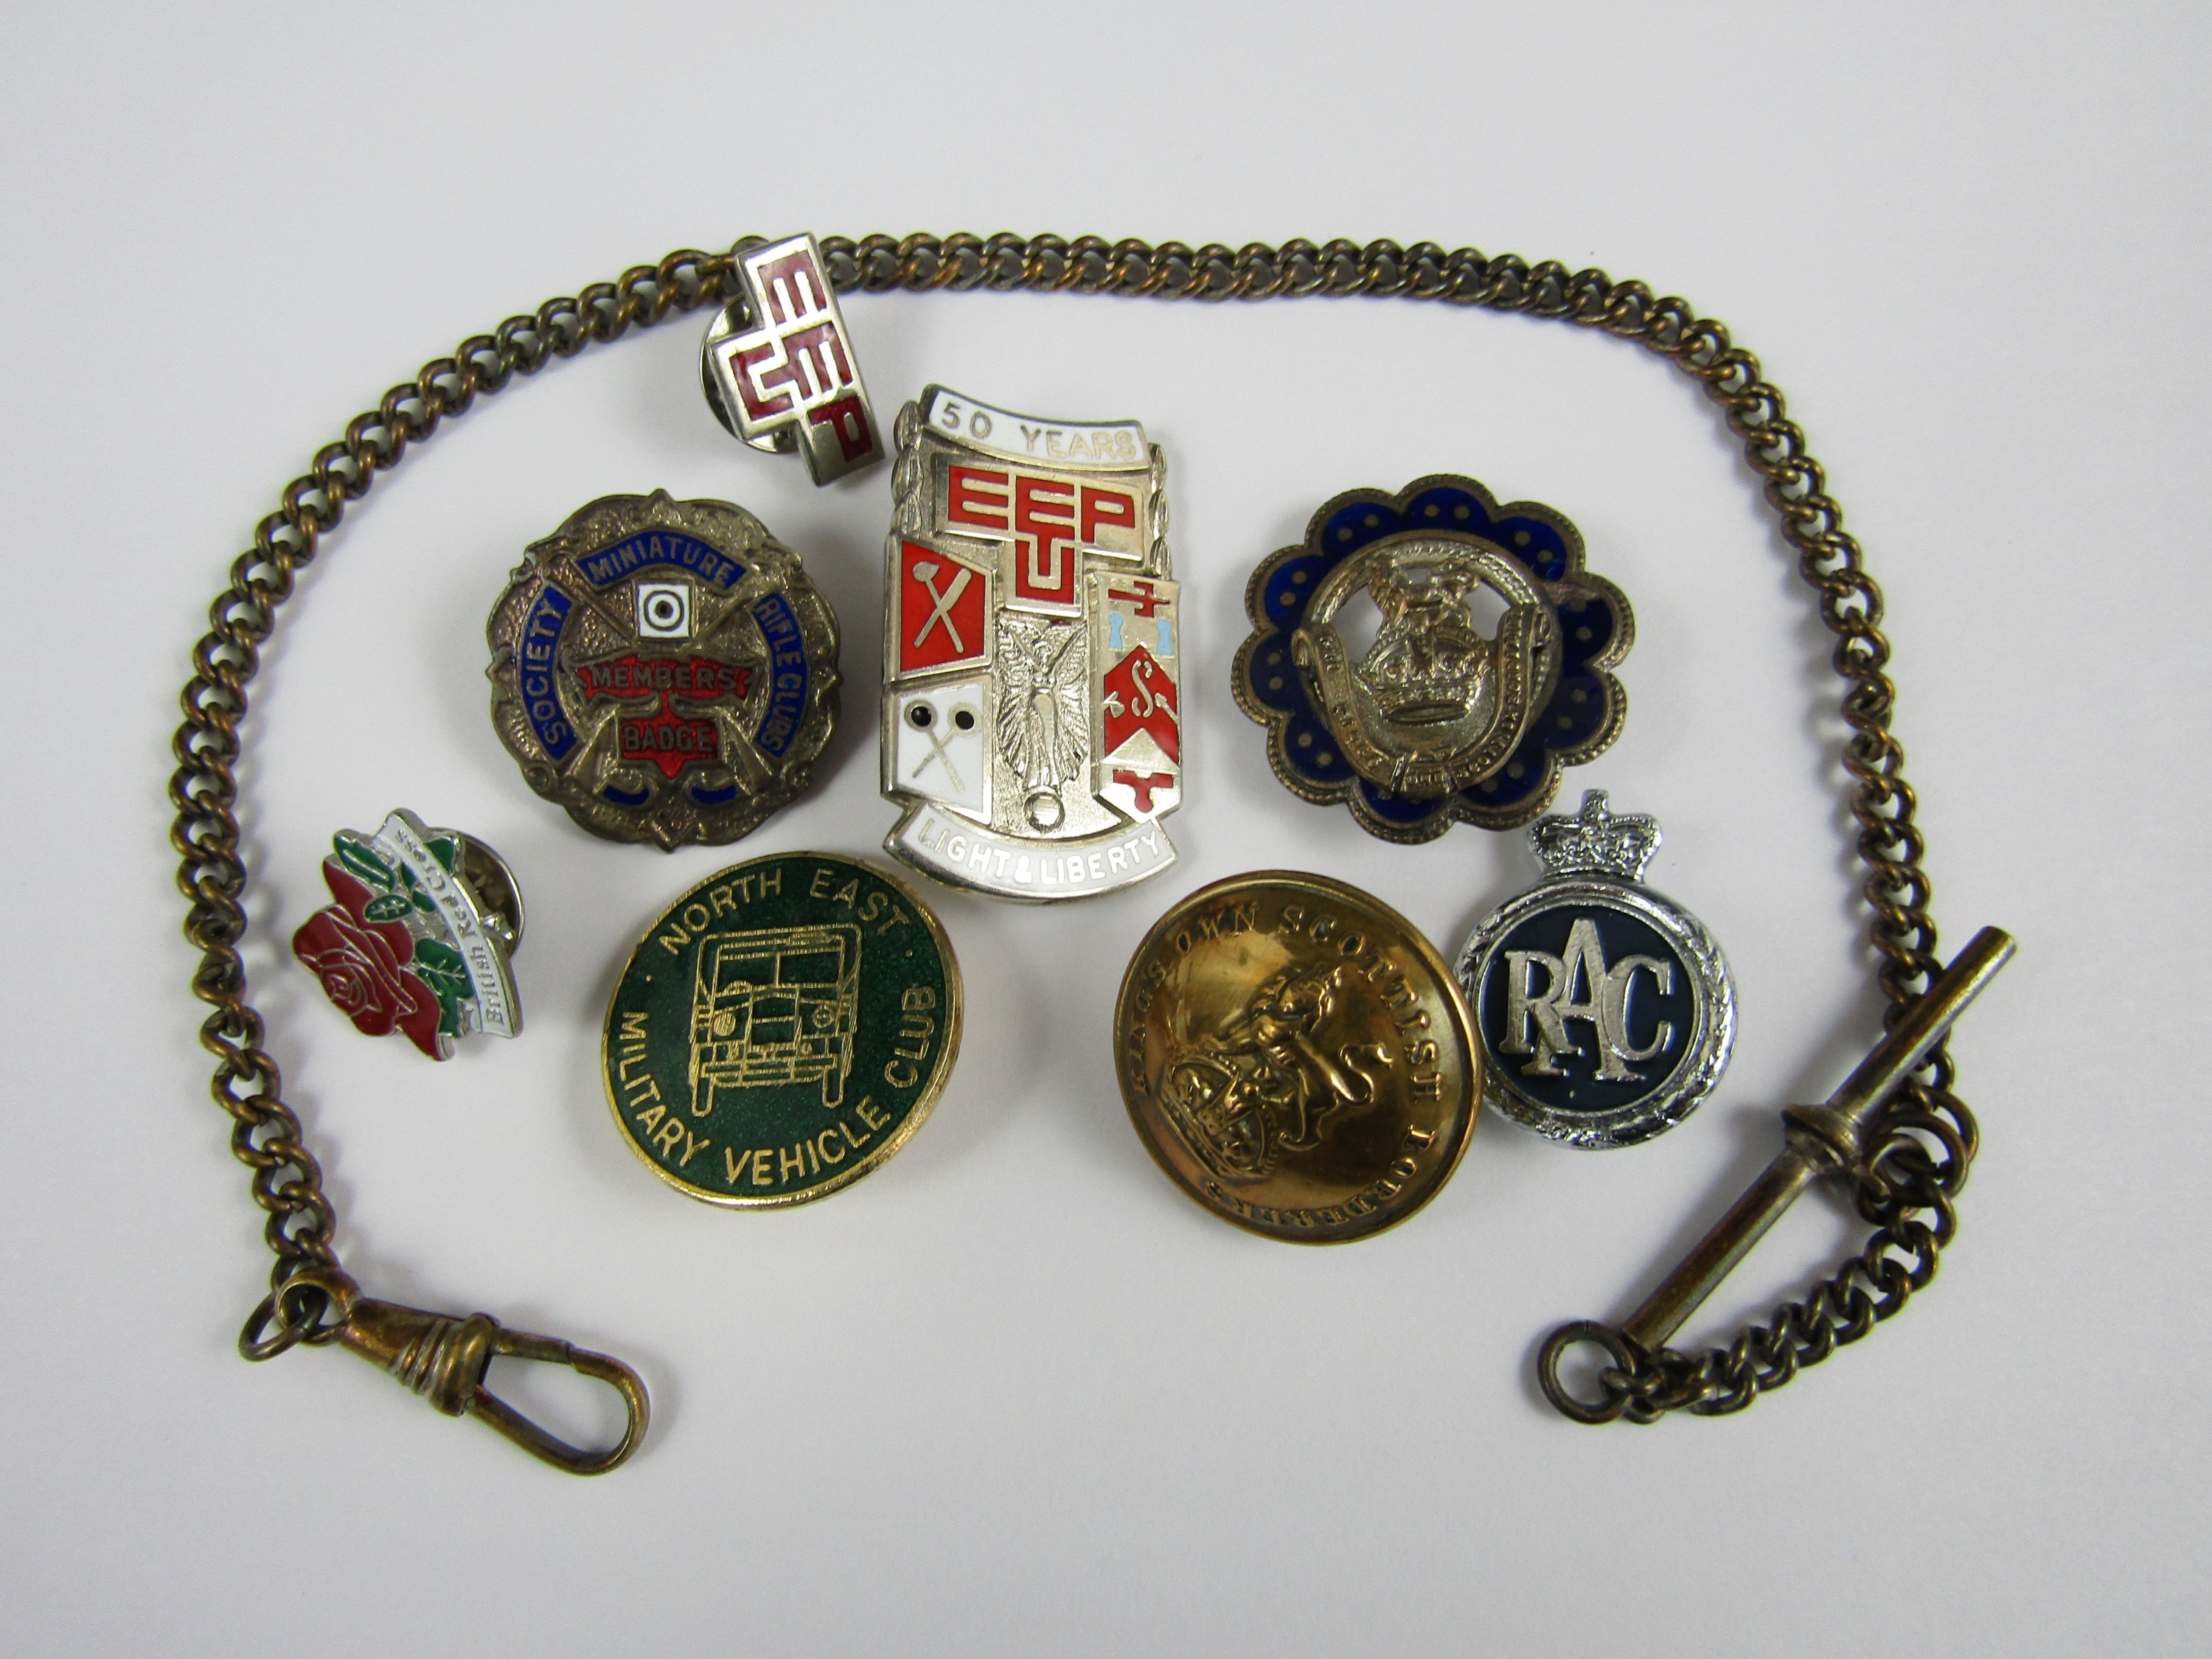 Lot 7 - A collection of various enamelled badges and buttons, including an enamelled silver Trade Union